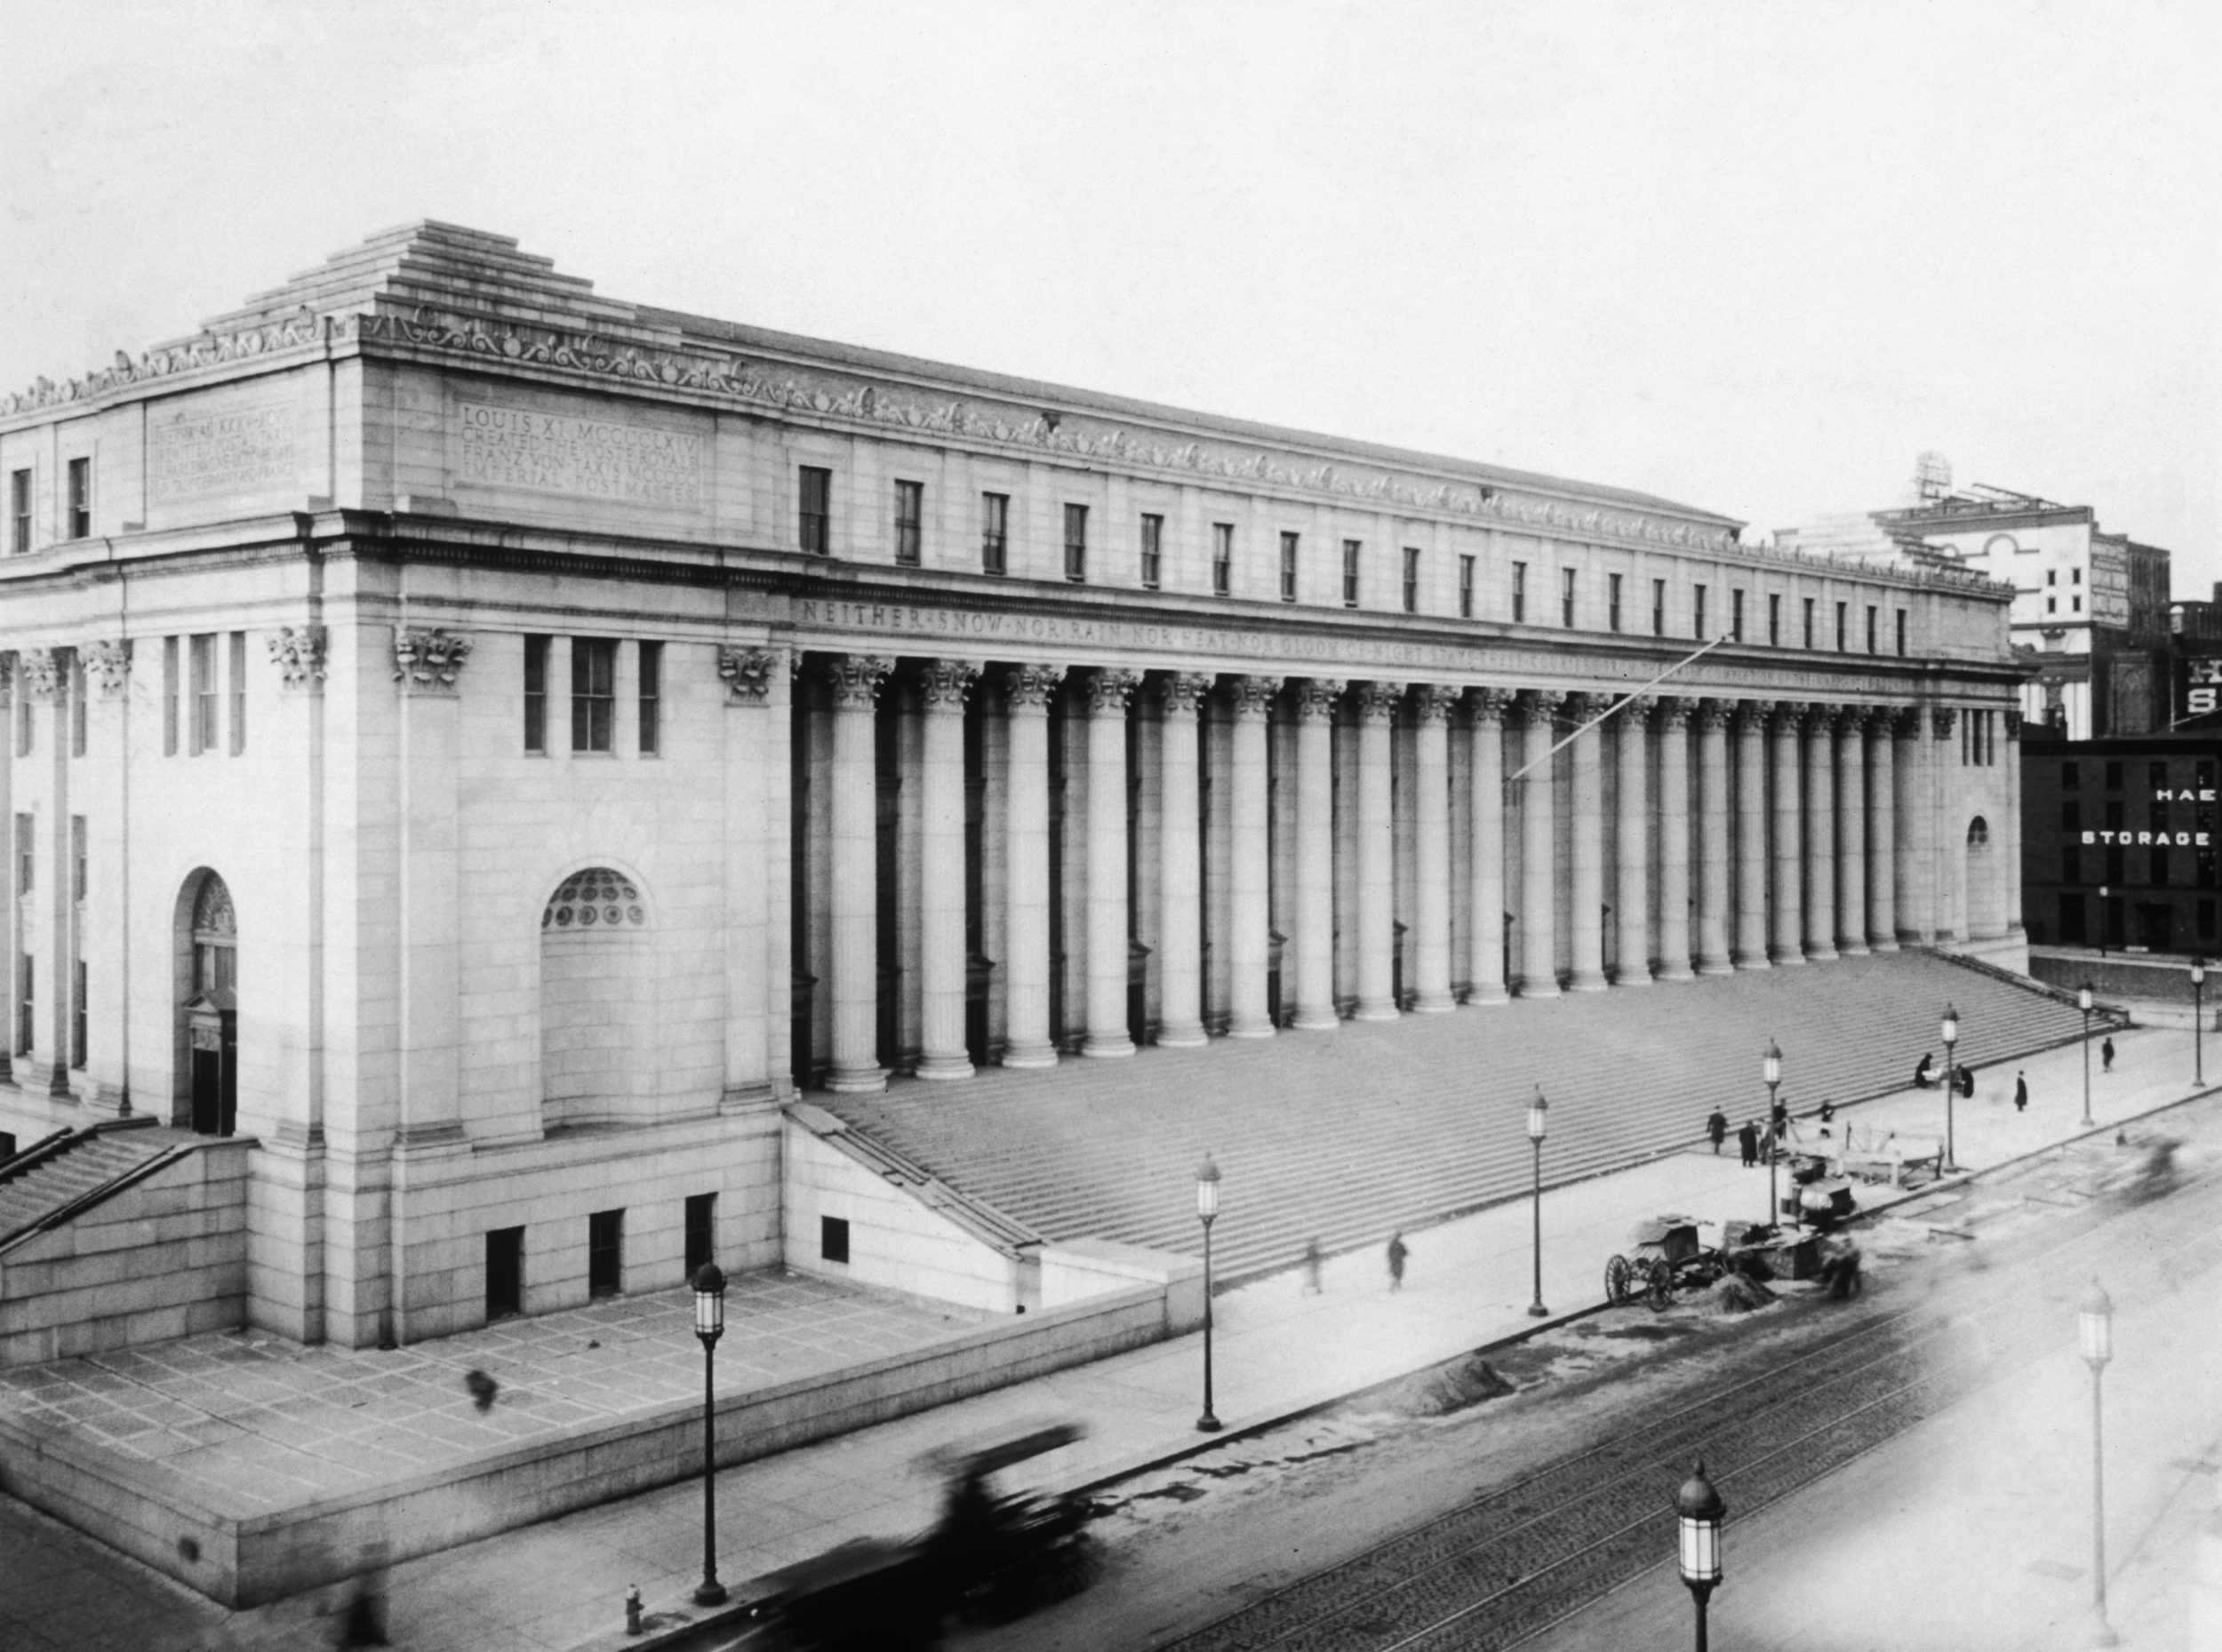 Circa 1915: Exterior view of the General Post Office on 8th Avenue at 34th Street, which still stands just five shortblocks from my studio.